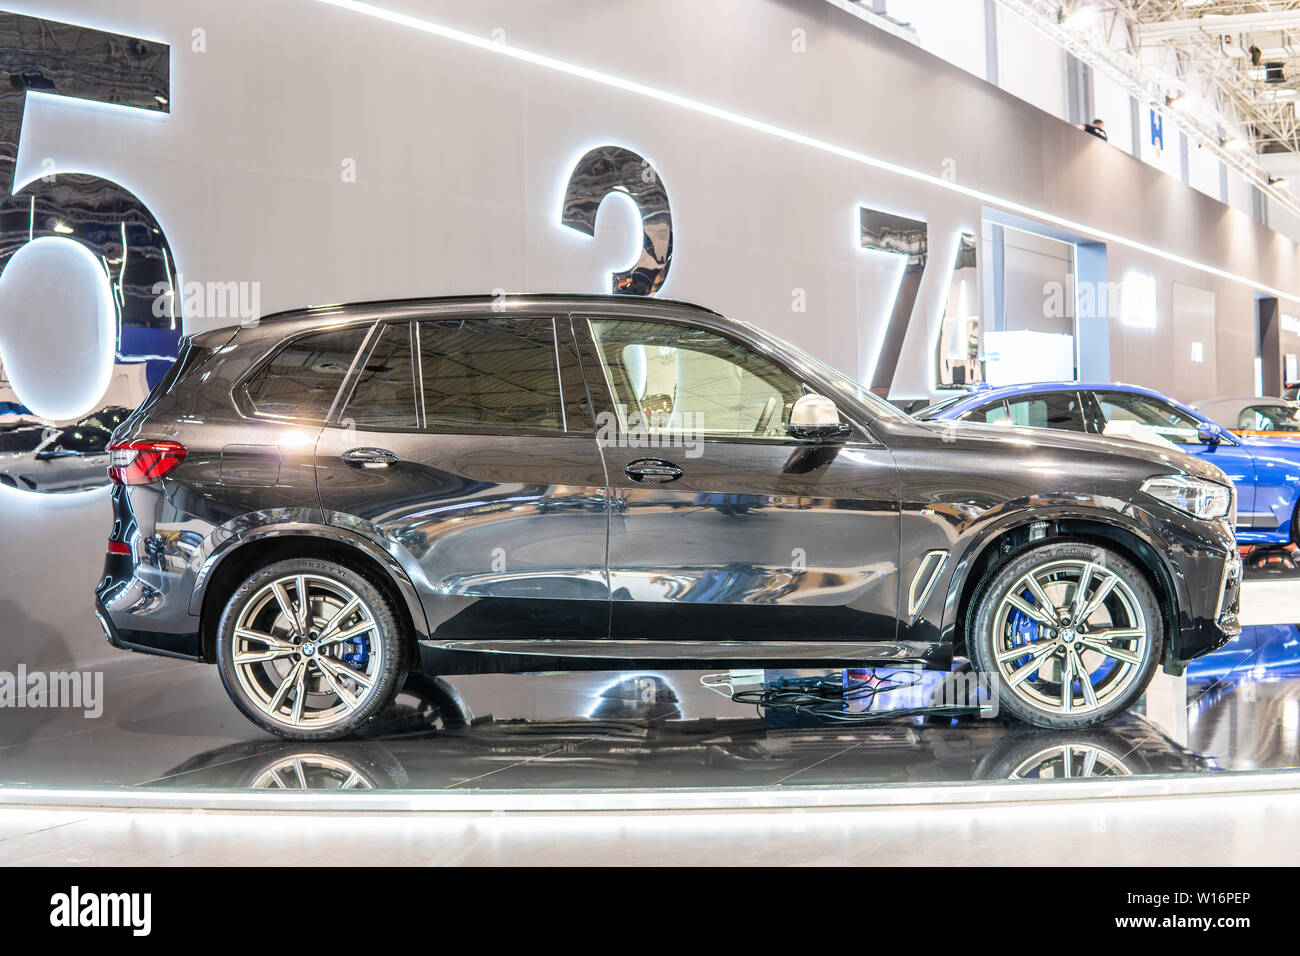 Poznan, Poland, Mar 2019 all new BMW X5 M50d,Poznan International Motor Show, 4th gen G05, suv manufactured and marketed by BMW - Stock Image